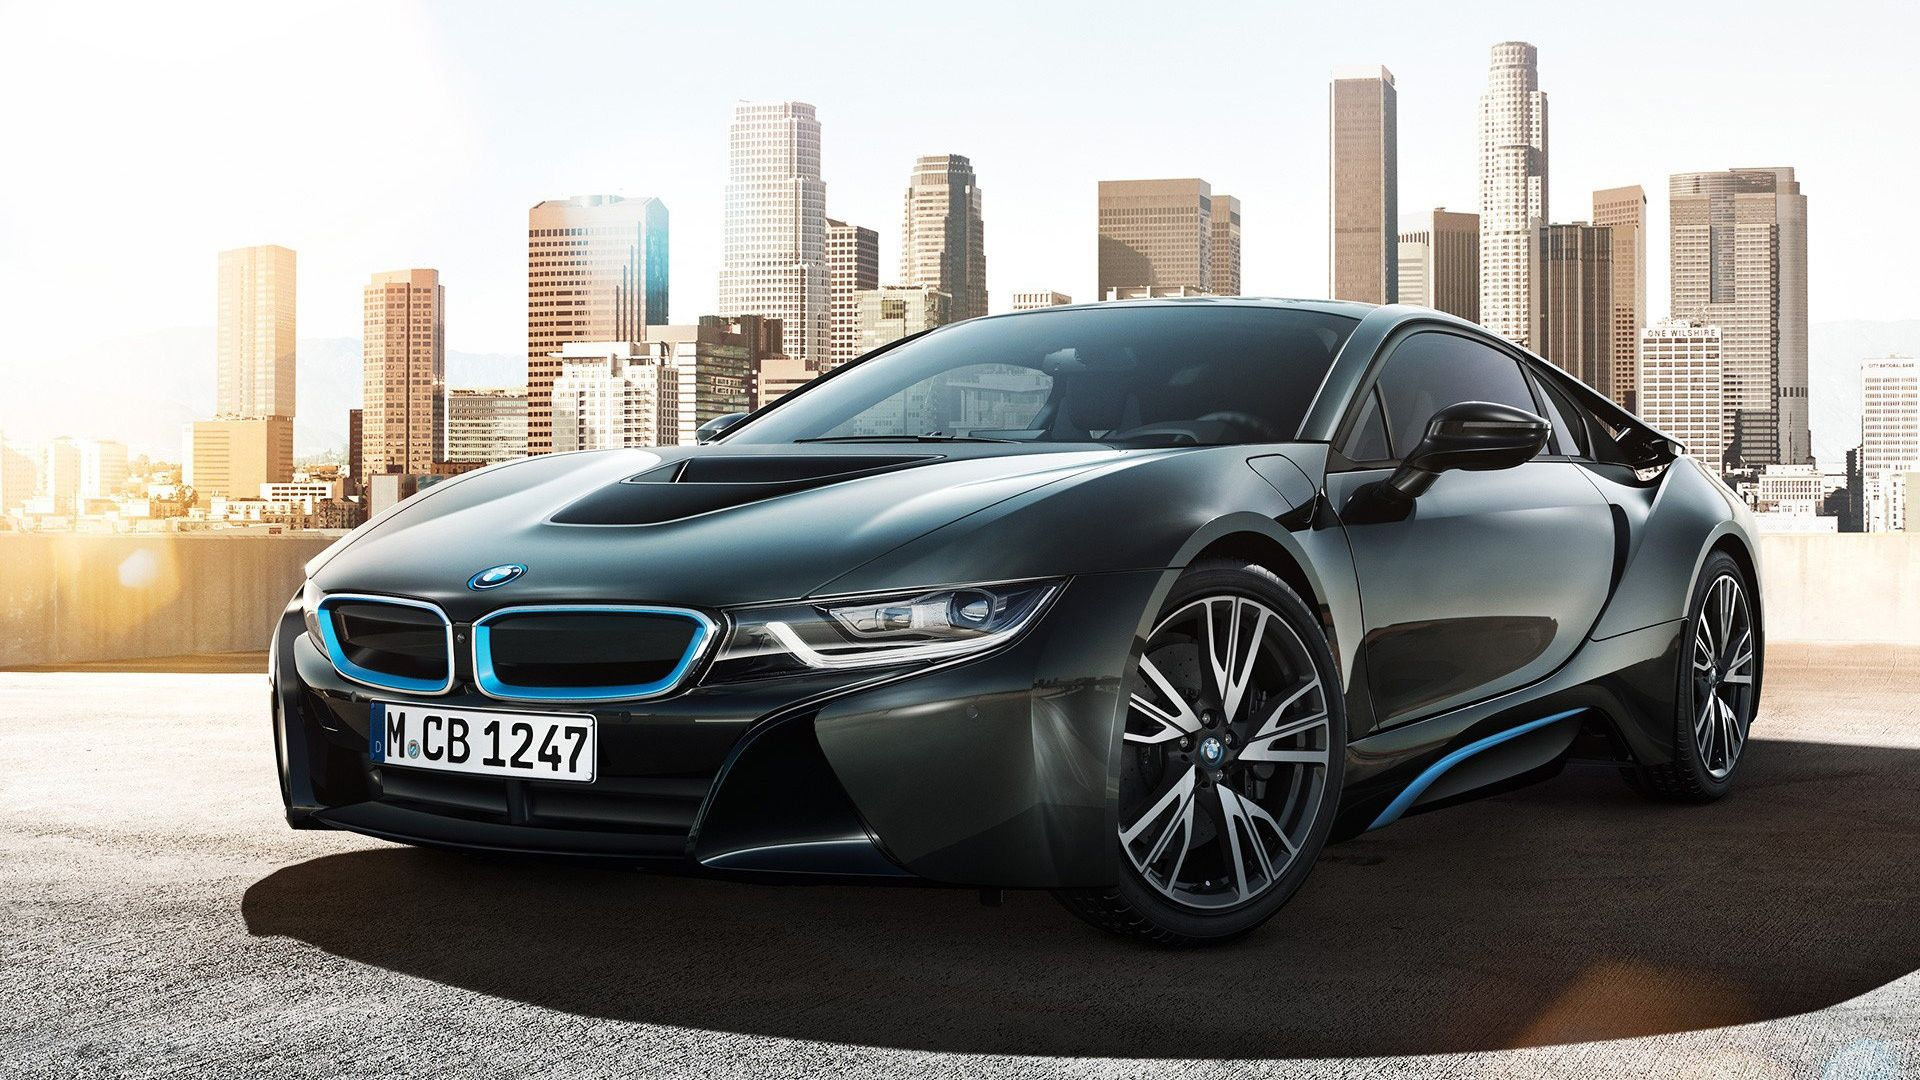 The official bmw ag website bmw automobiles services technologies joy is bmw